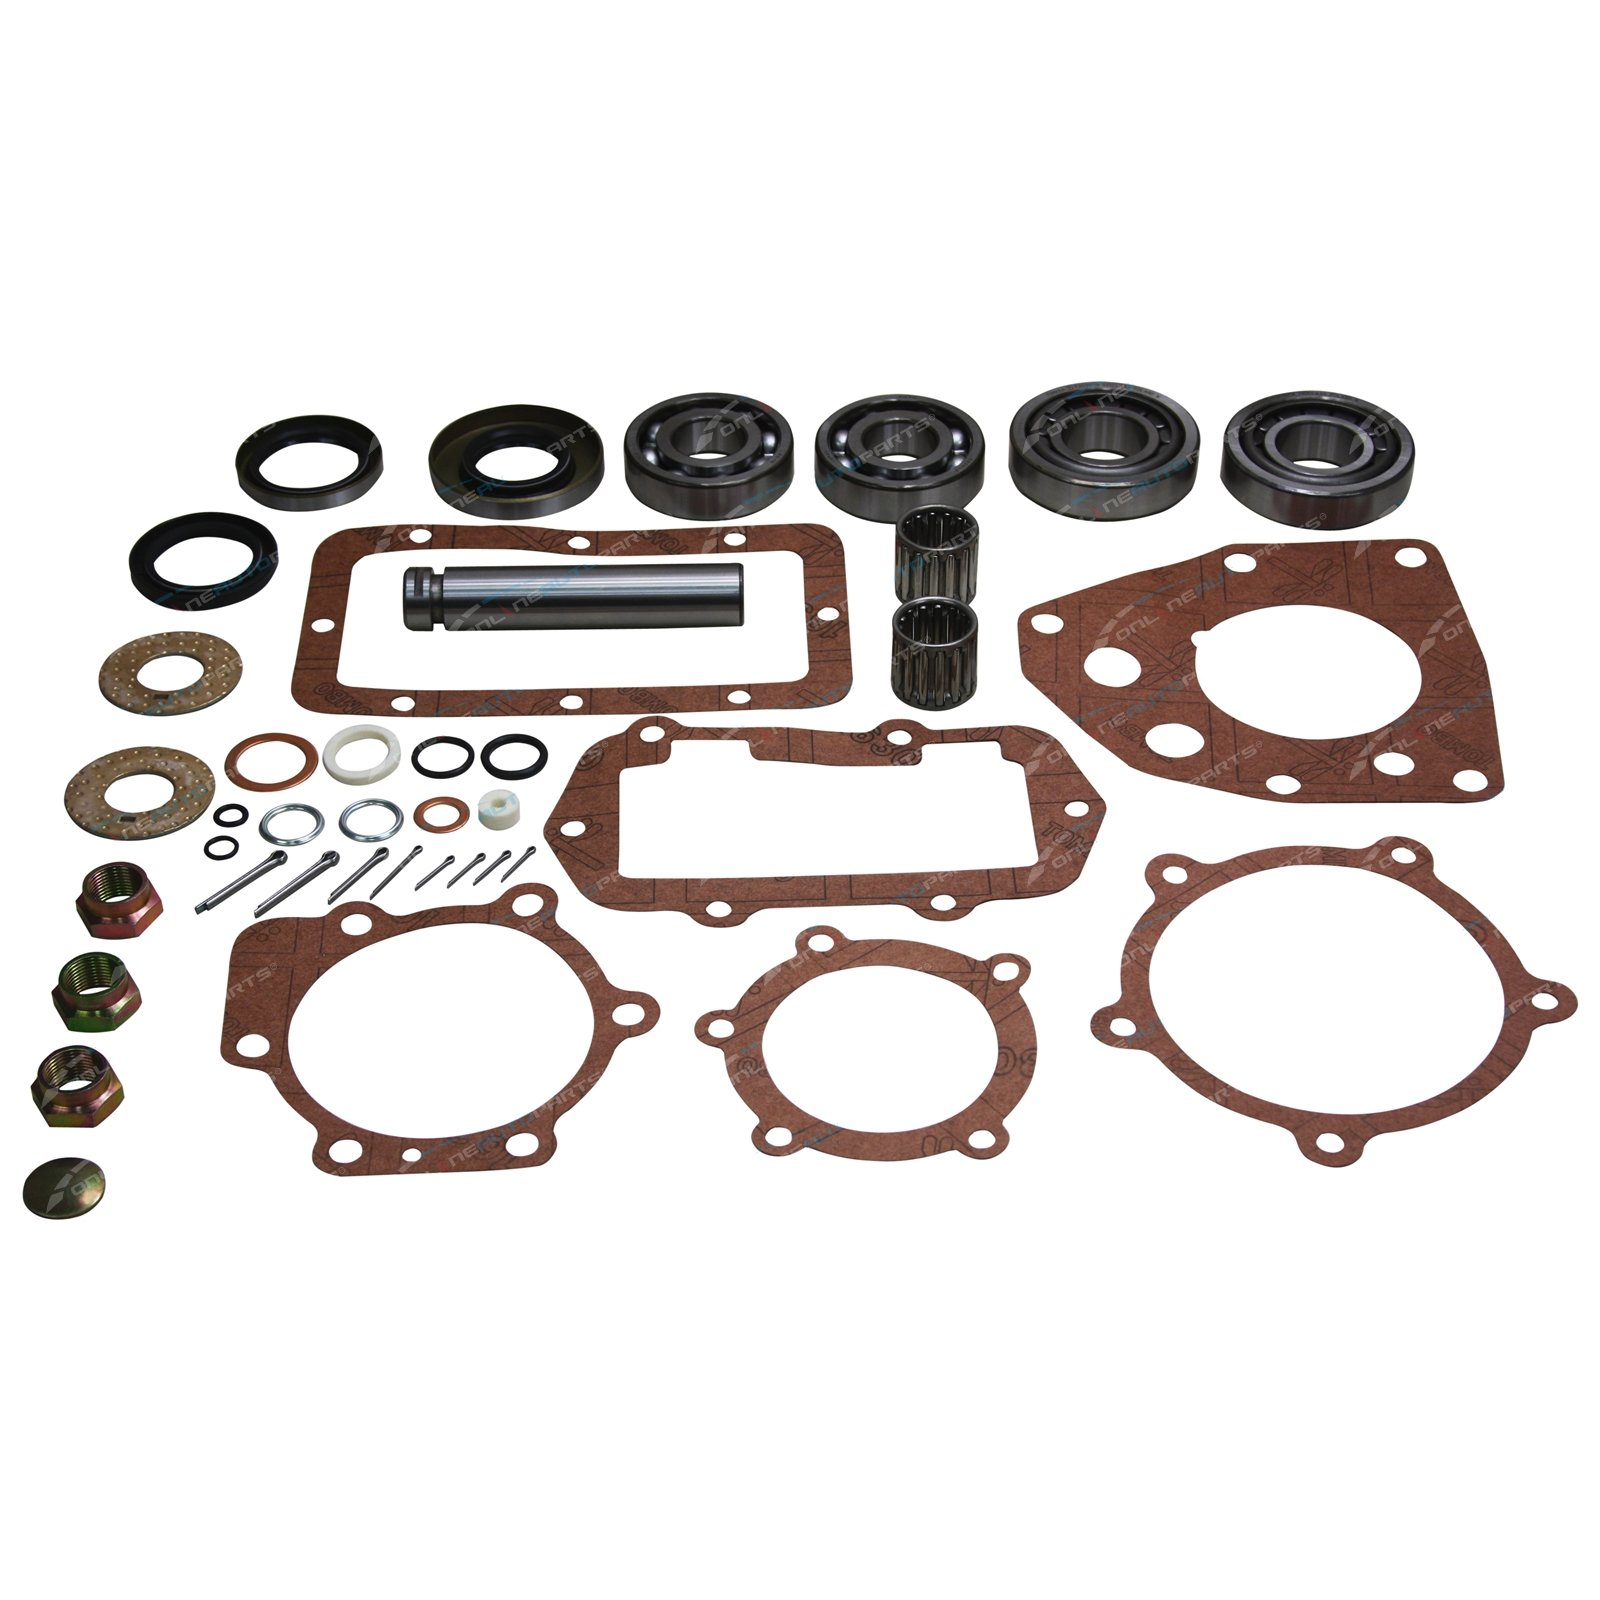 Transfer Case Rebuild Kit suits Toyota Landcruiser 3spd Early